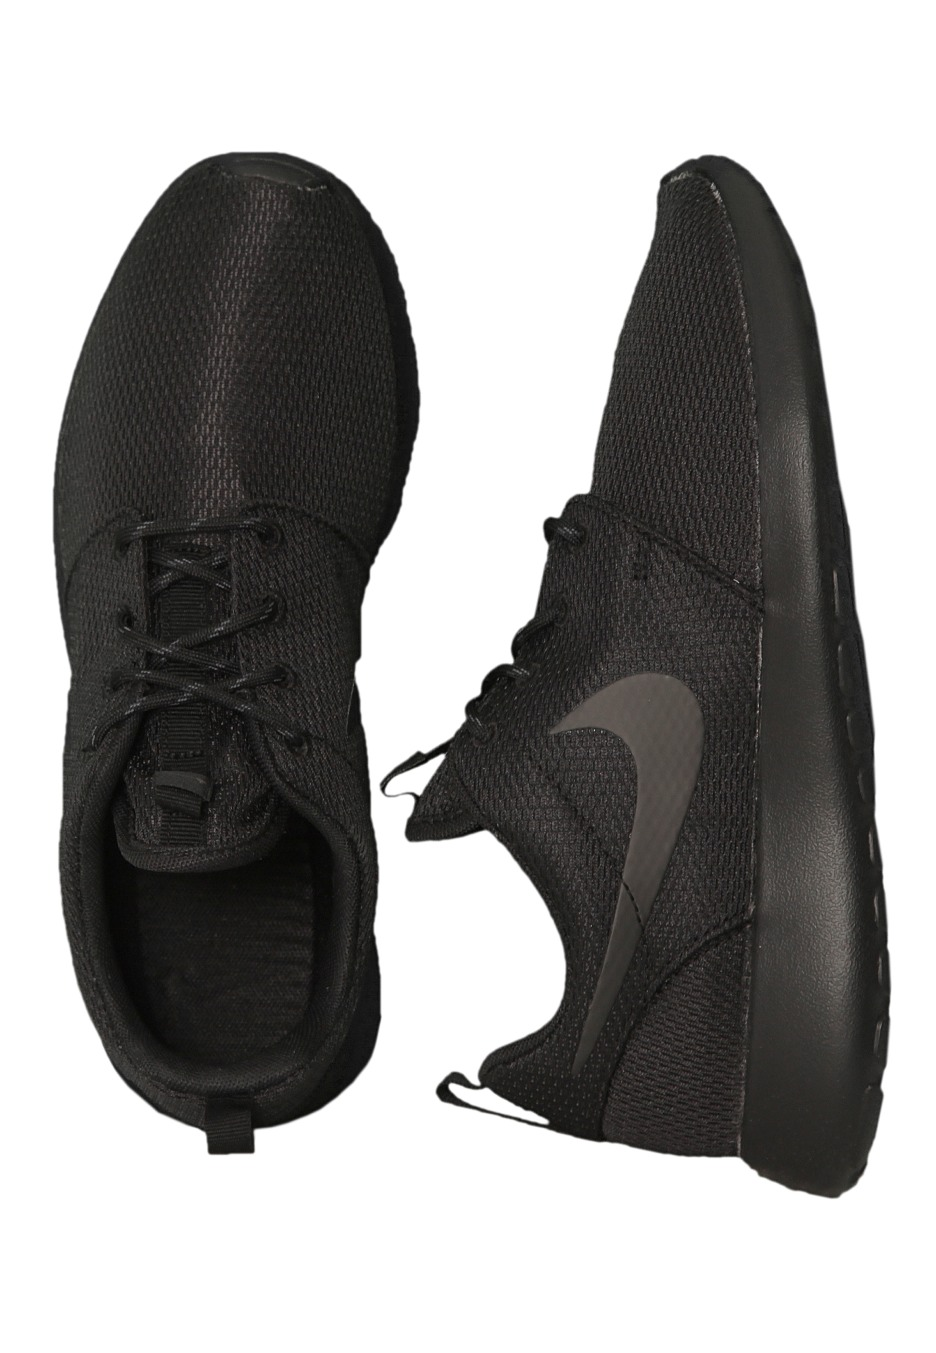 Nike - Roshe One Black Black Anthracite - Girl Shoes - Impericon.com  Worldwide cceb0700e